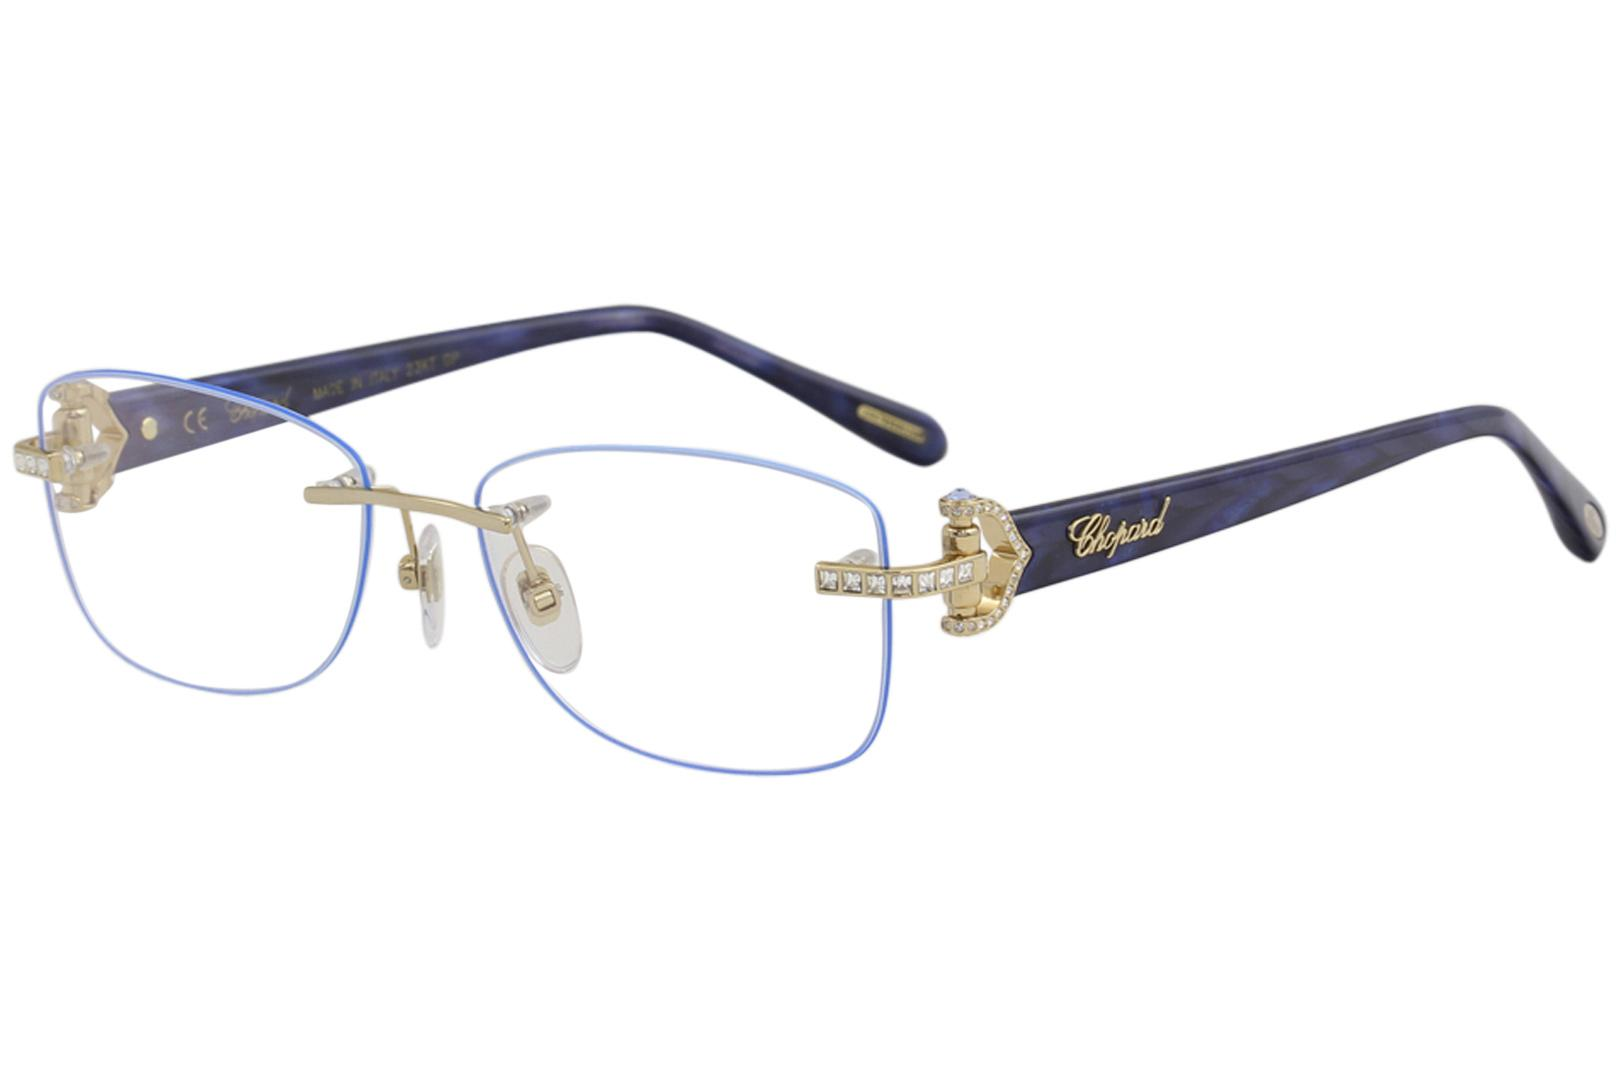 a9f3293b898 Chopard Womens Eyeglasses VCHC01S VCH   C01S Rimless Optical Frame